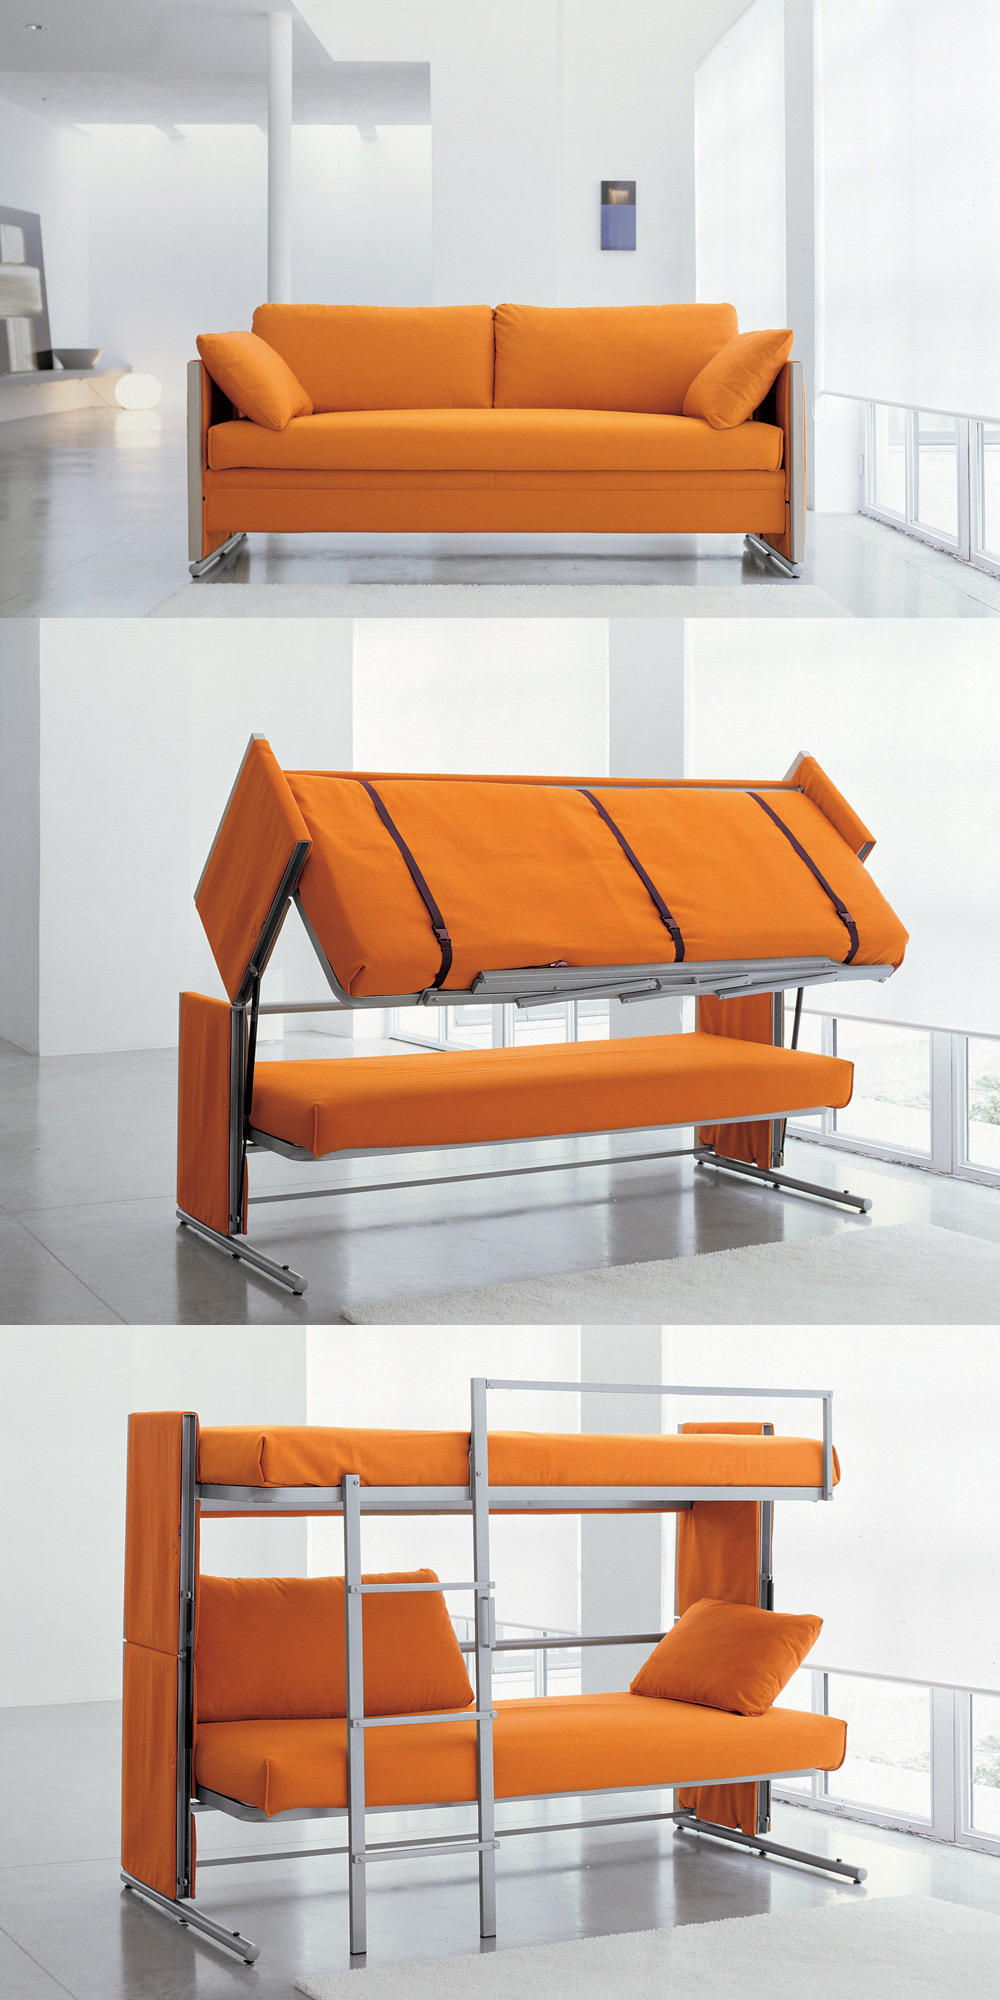 Couch That Turns Into Bed Interesting, Strange And Great Inventions [15 Pics] | I